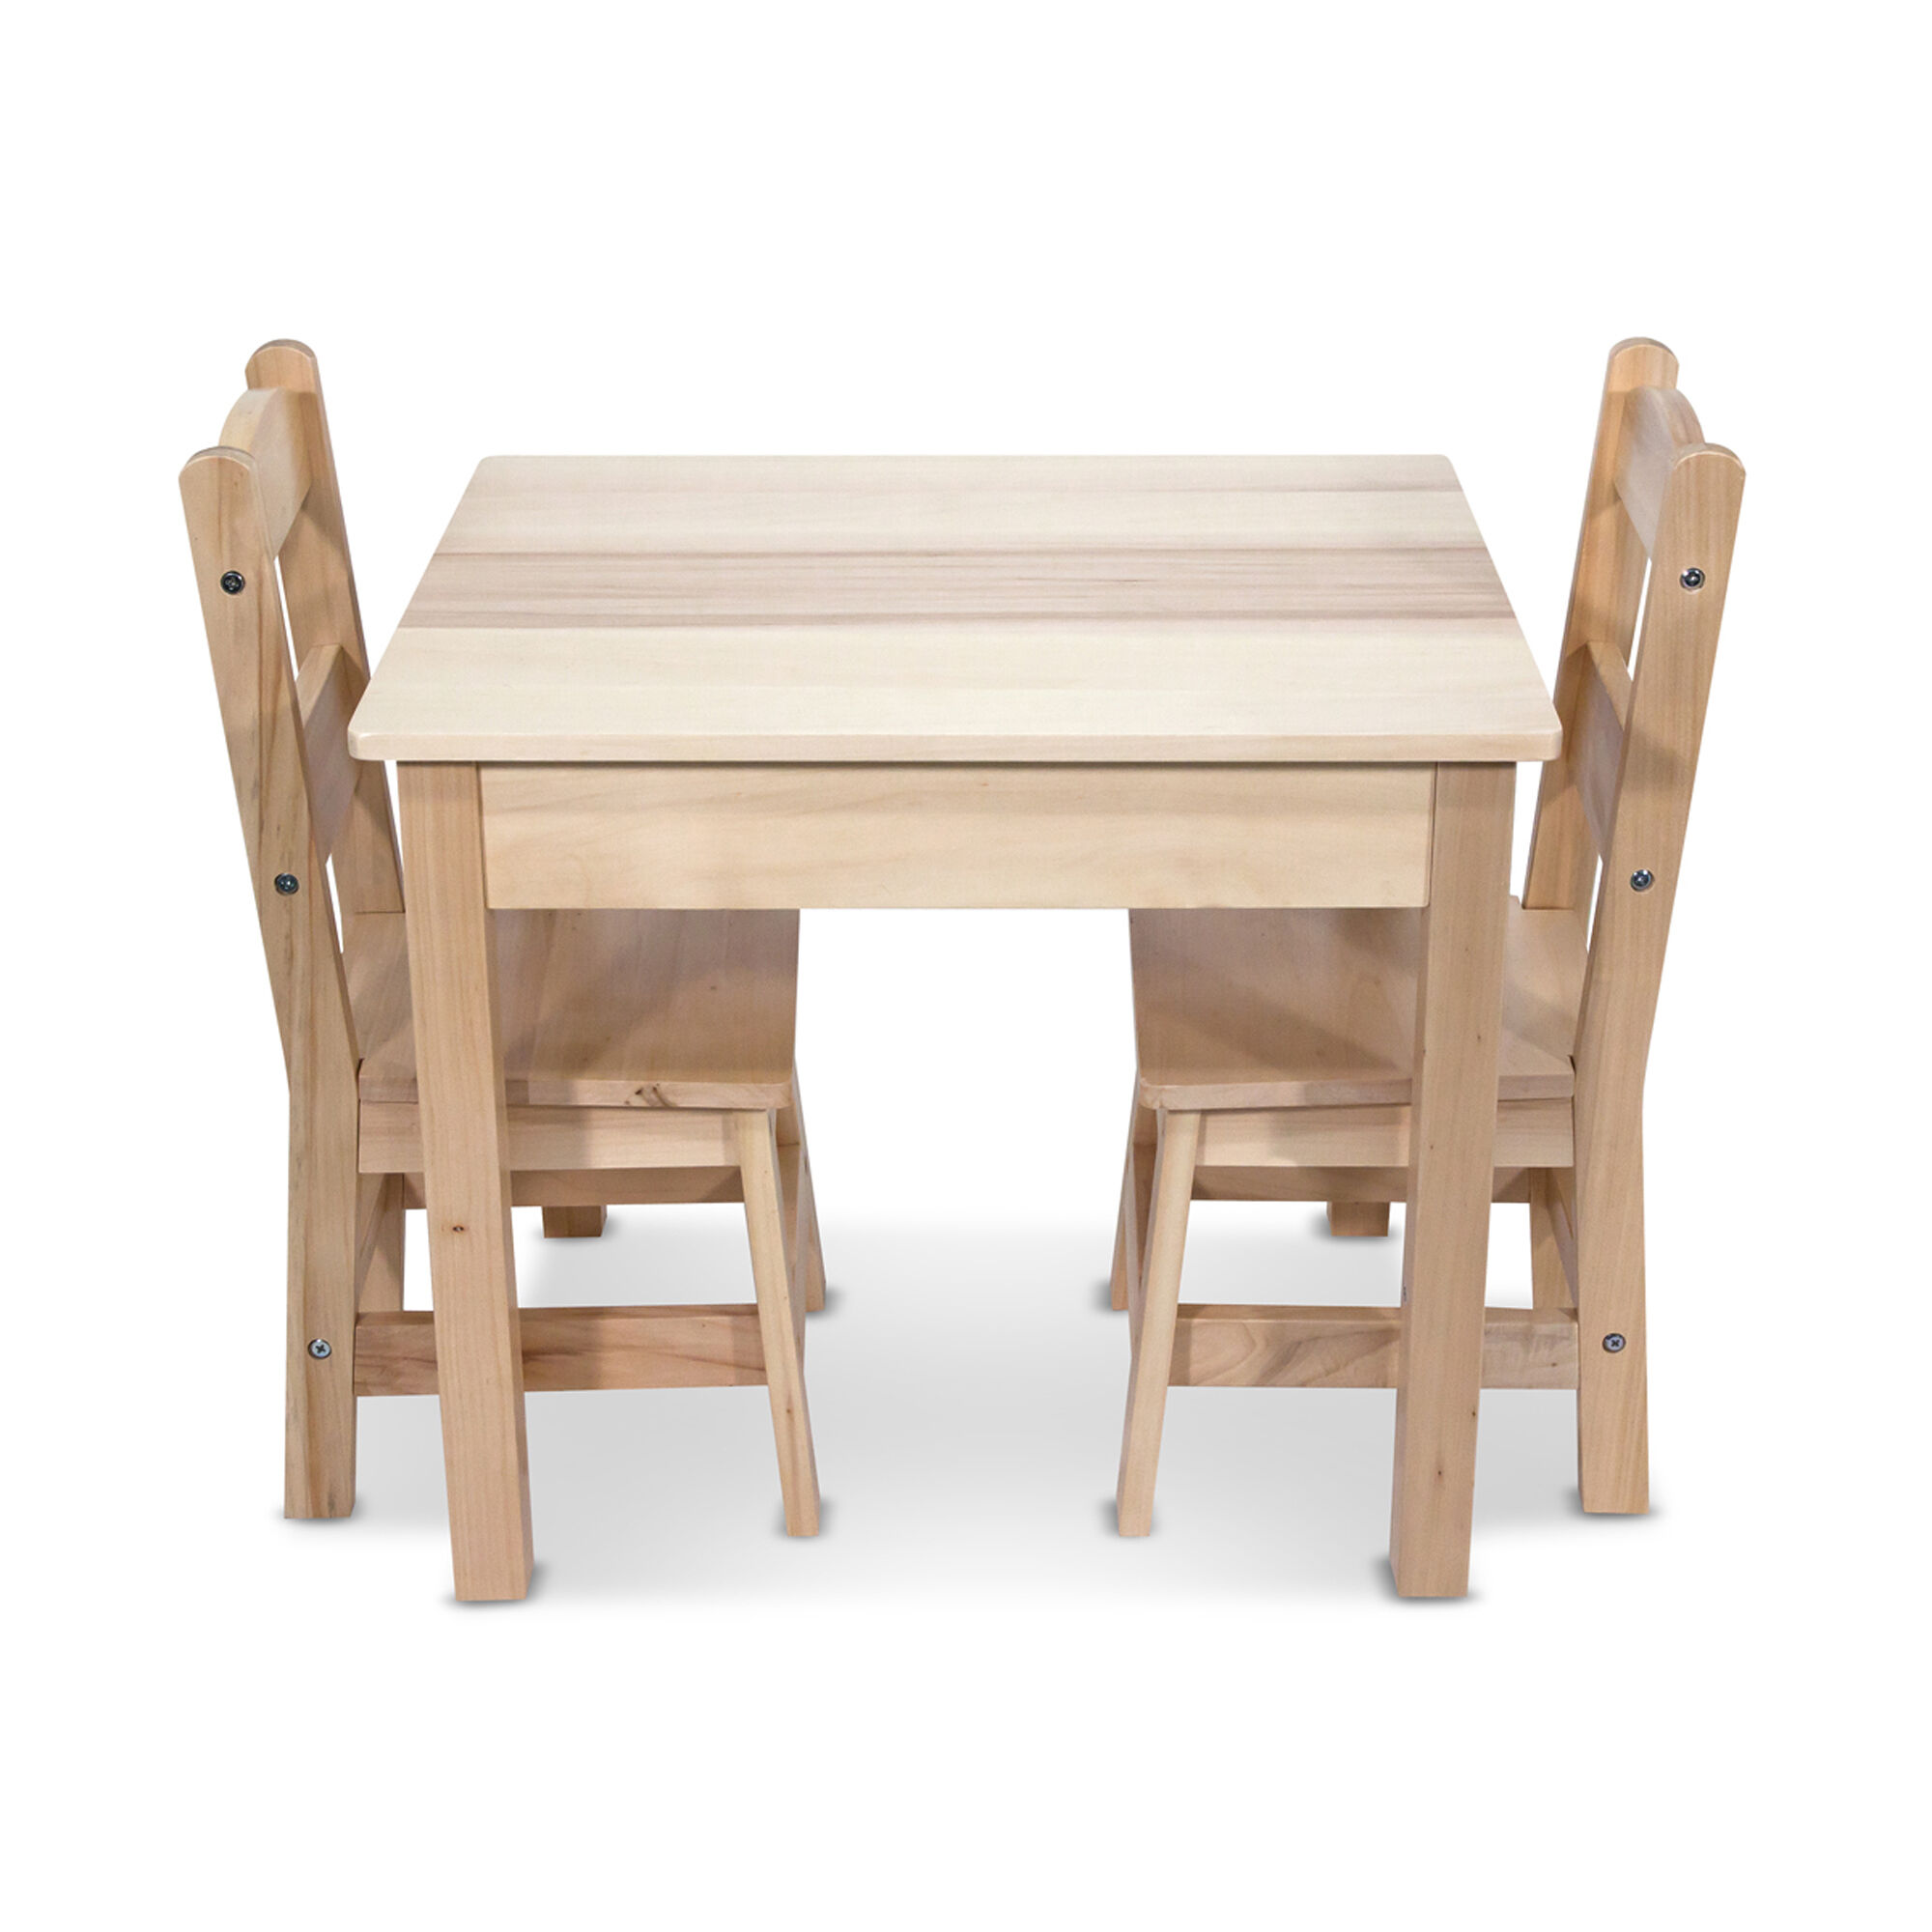 Solid Wood Table \u0026 Chairs 3-Piece Set  sc 1 st  Melissa \u0026 Doug & Wooden Table \u0026 Chairs 3-Piece Set